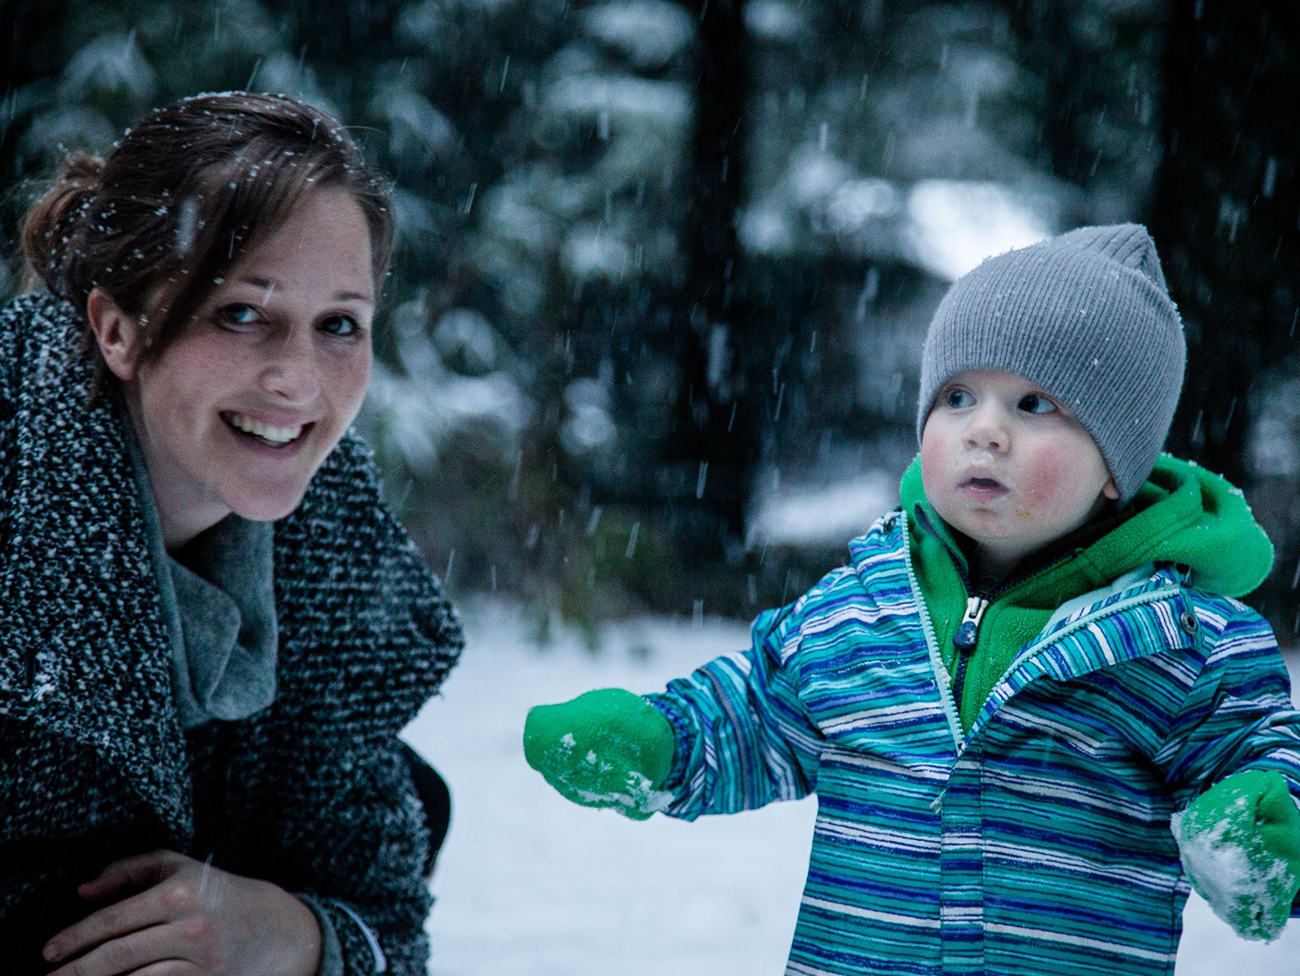 Cara Lewis with her son River at her parents' home on Vancouver Island, BC, Canada.